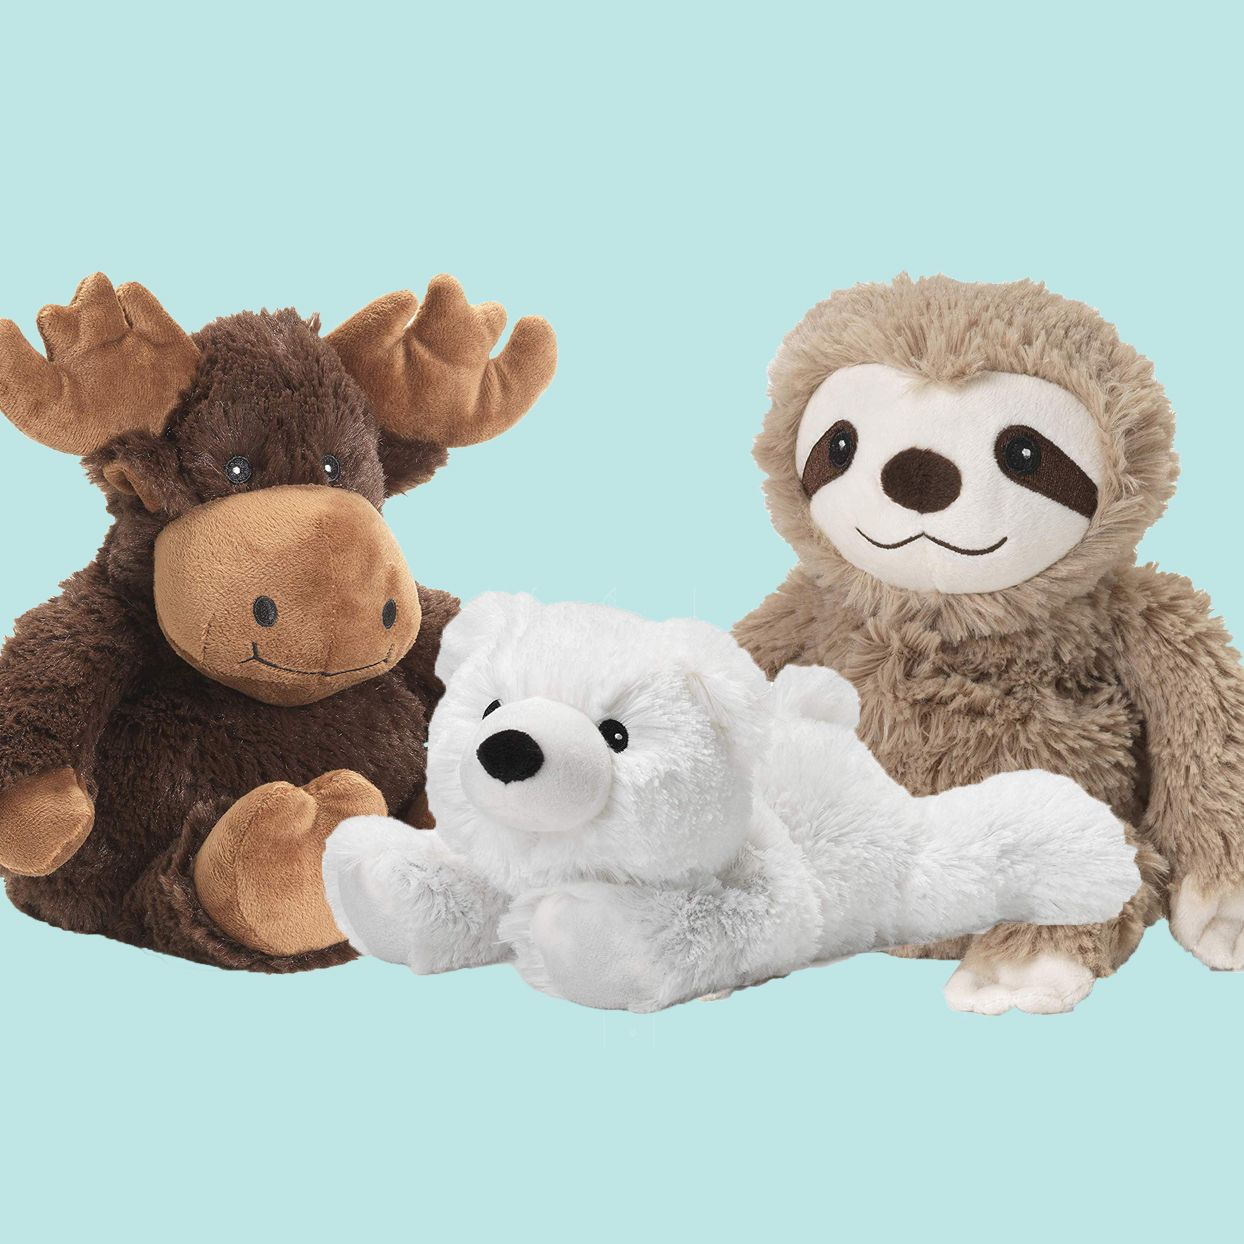 These Stuffed Animal Heating Pads Are the Cutest Way to